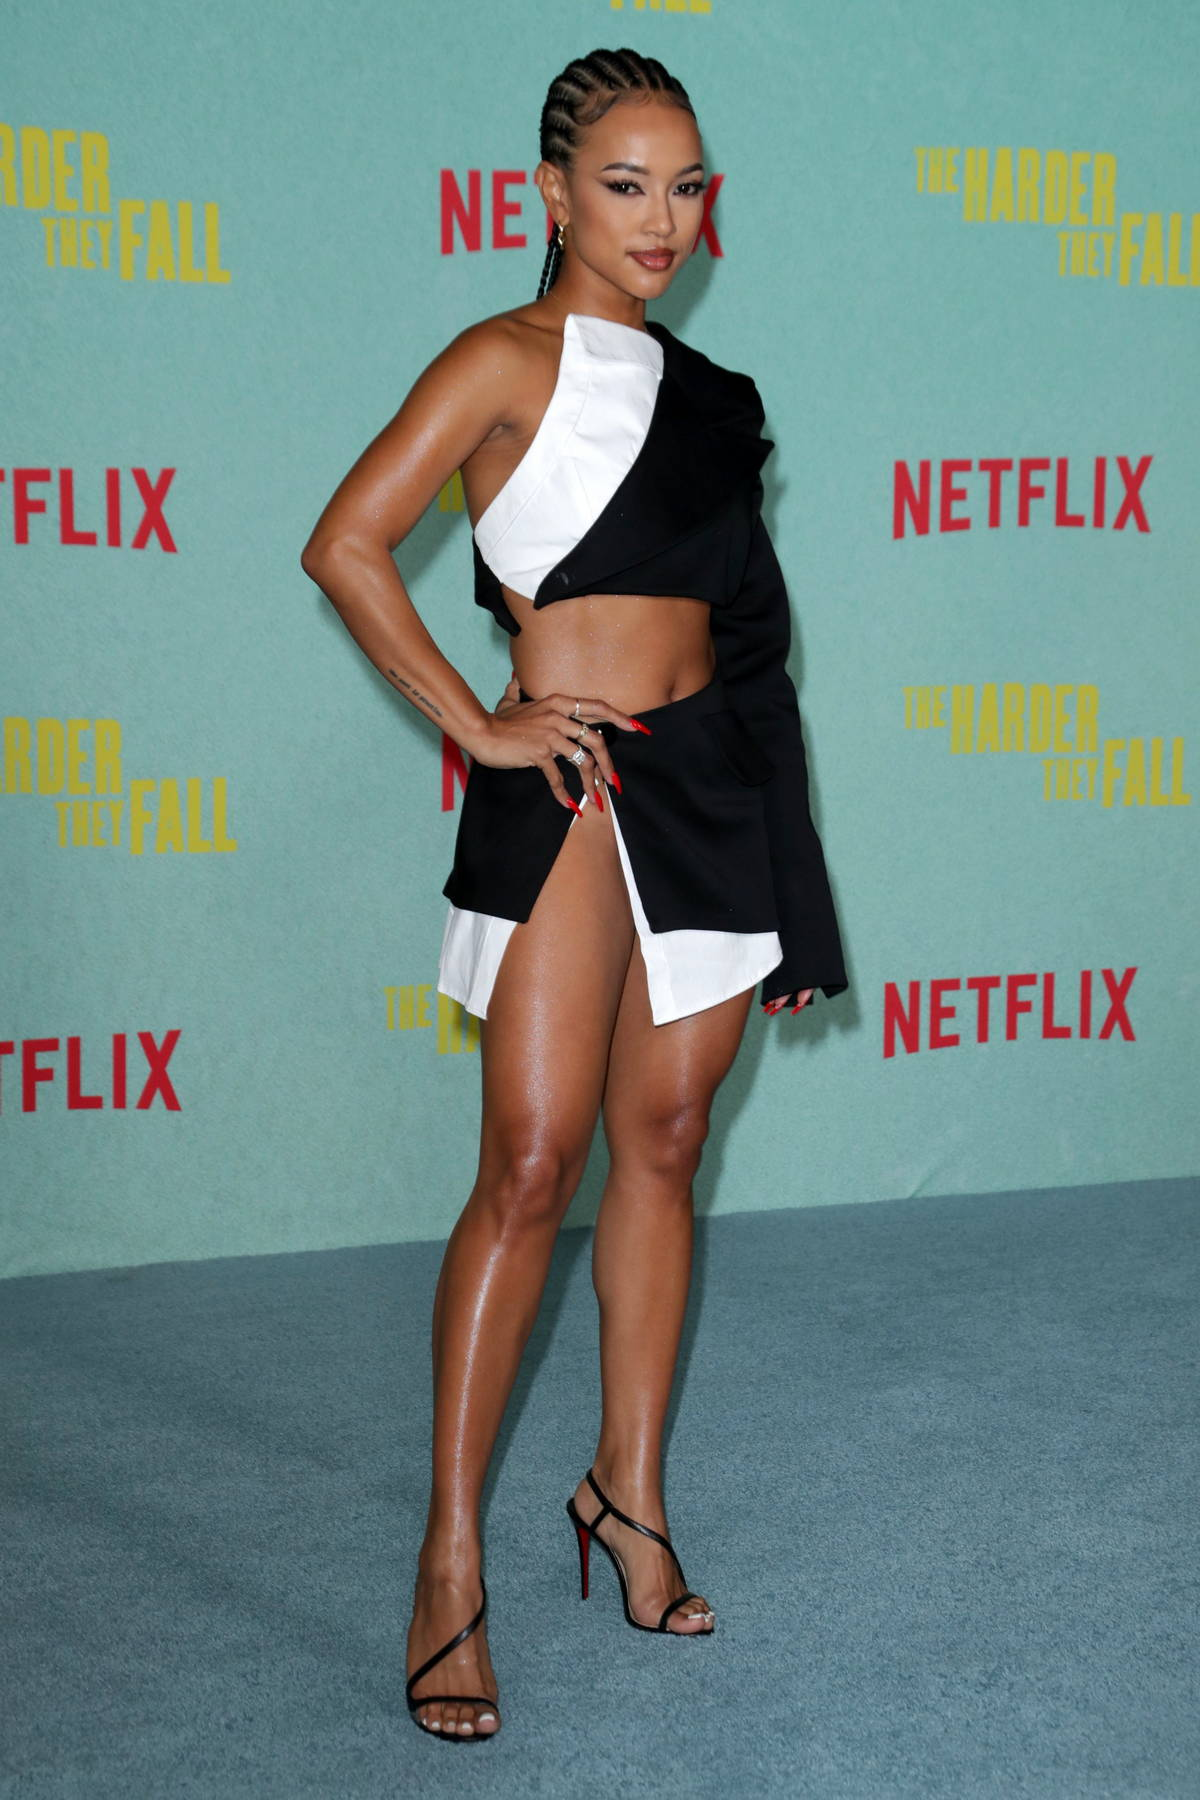 Karrueche Tran attends a special screening of 'The Harder They Fall' at The Shrine in Los Angeles